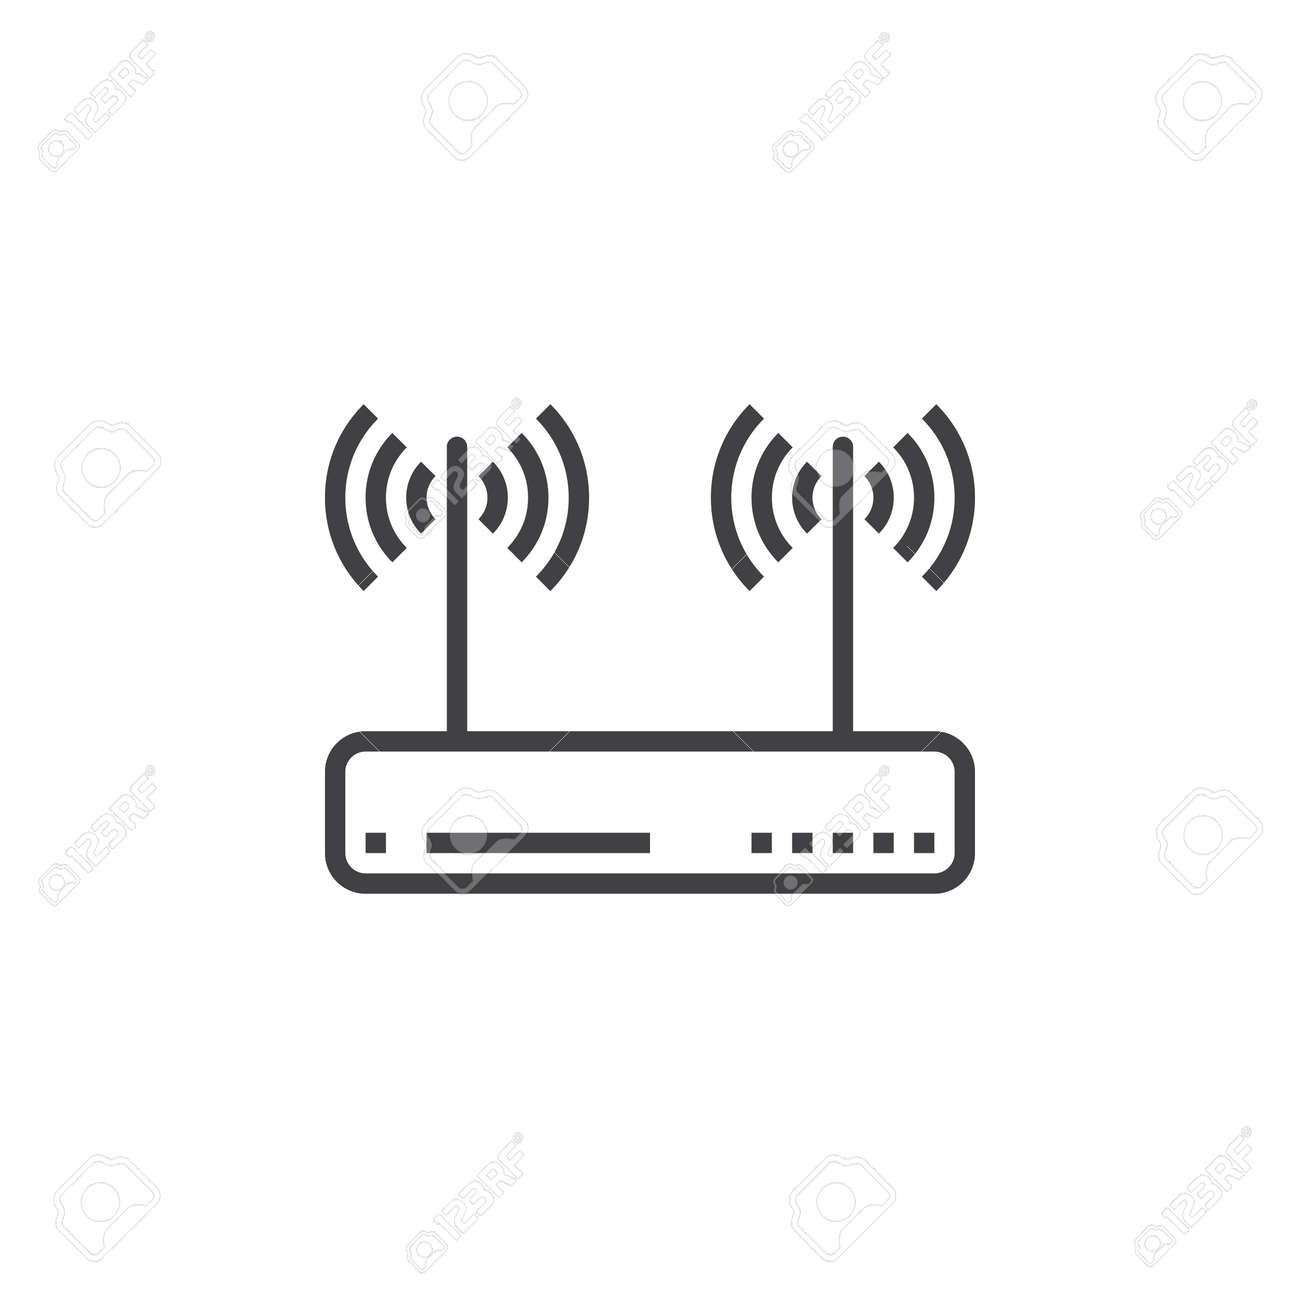 wifi router, wireless dsl modem line icon, outline vector sign,